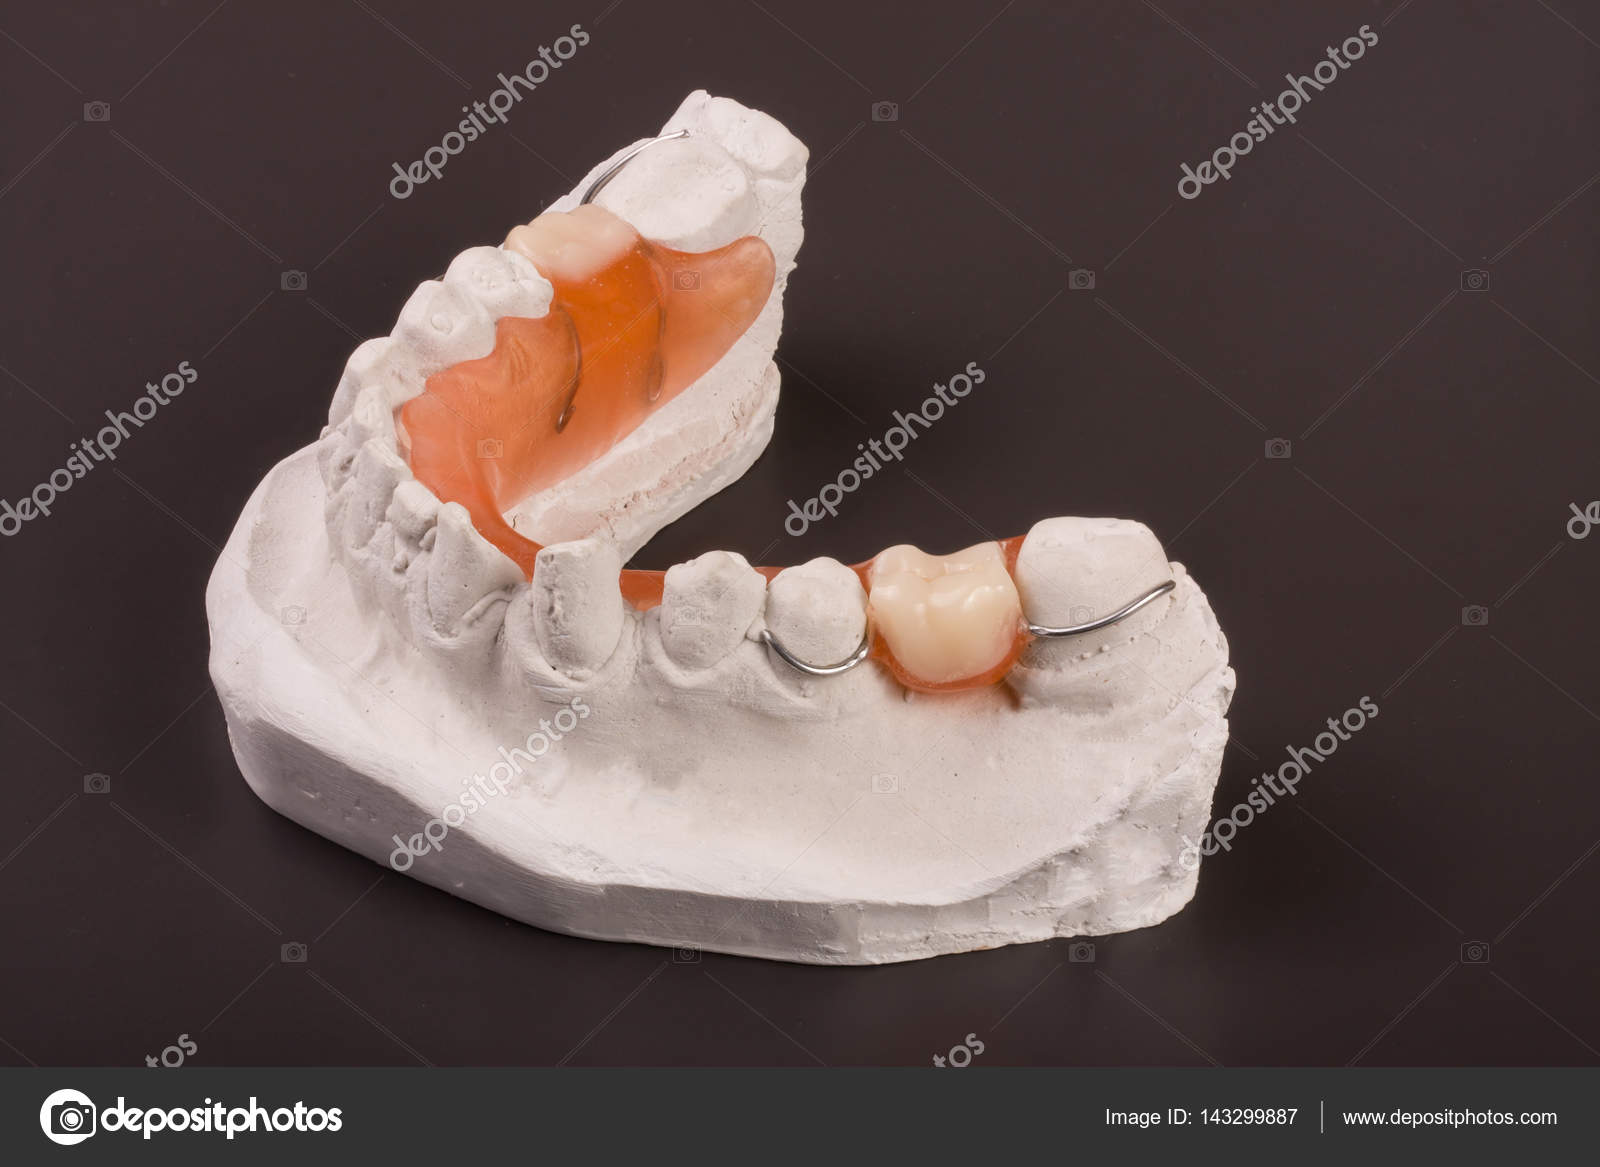 hight resolution of a plaster cast of teeth with removable partial denture on a dark background photo by kolesnikovserg